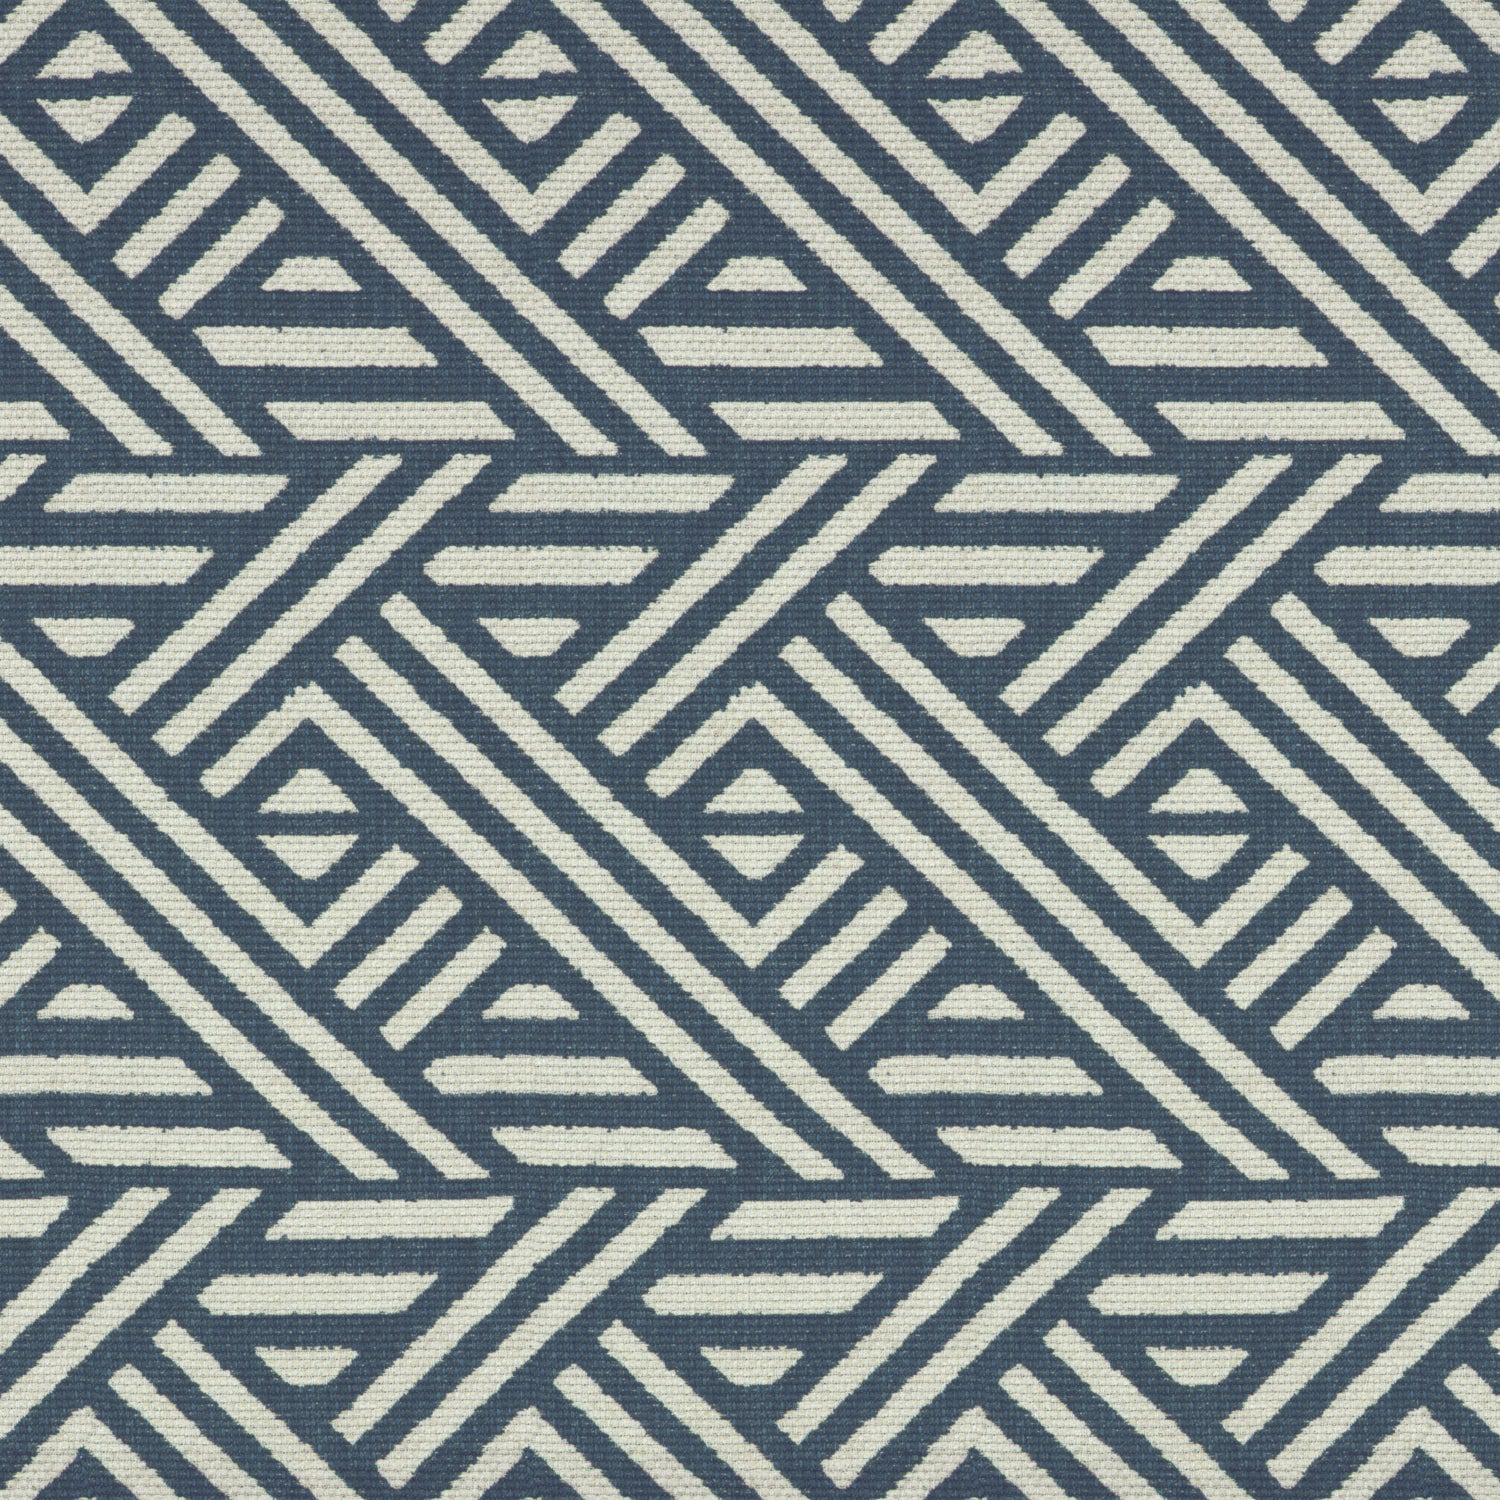 Blue and white geometric print fabric suitable for curtains and upholstery